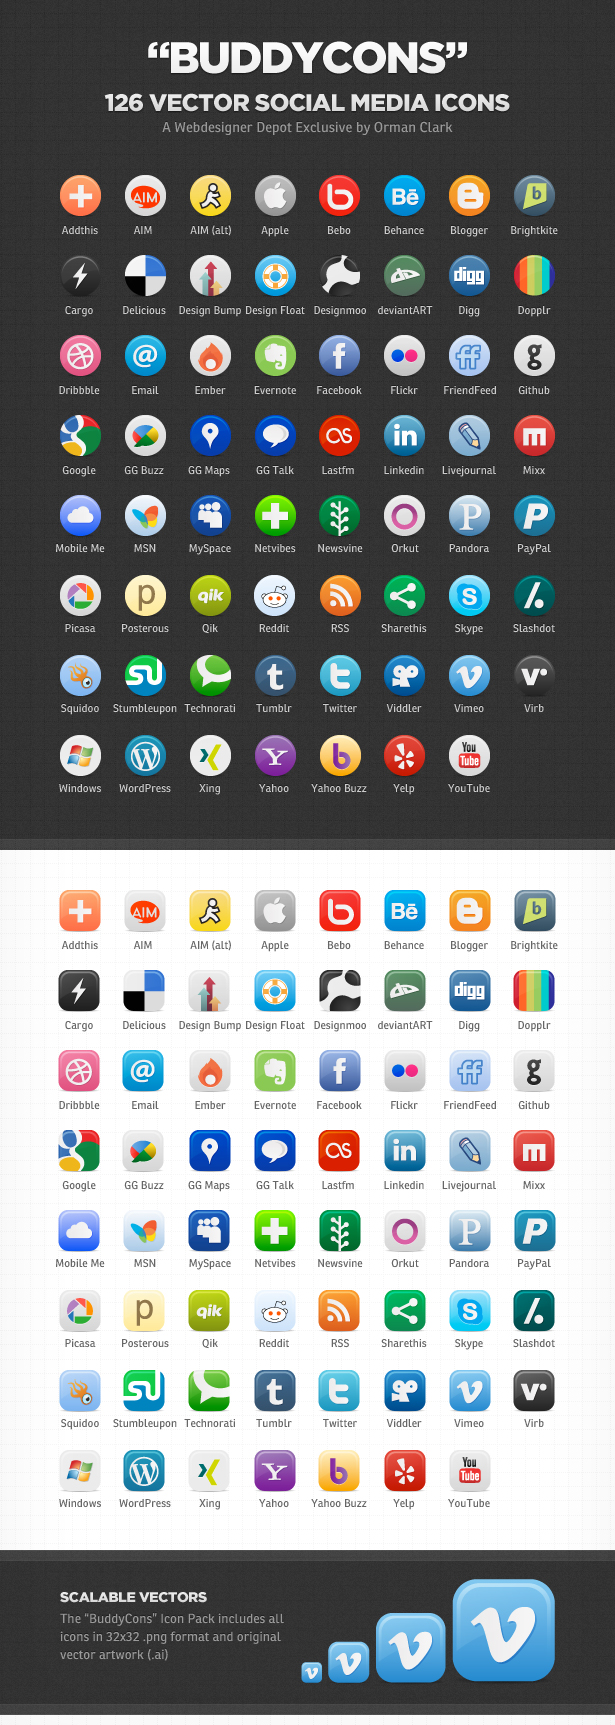 Vector Social Media Icons by Orman Clark